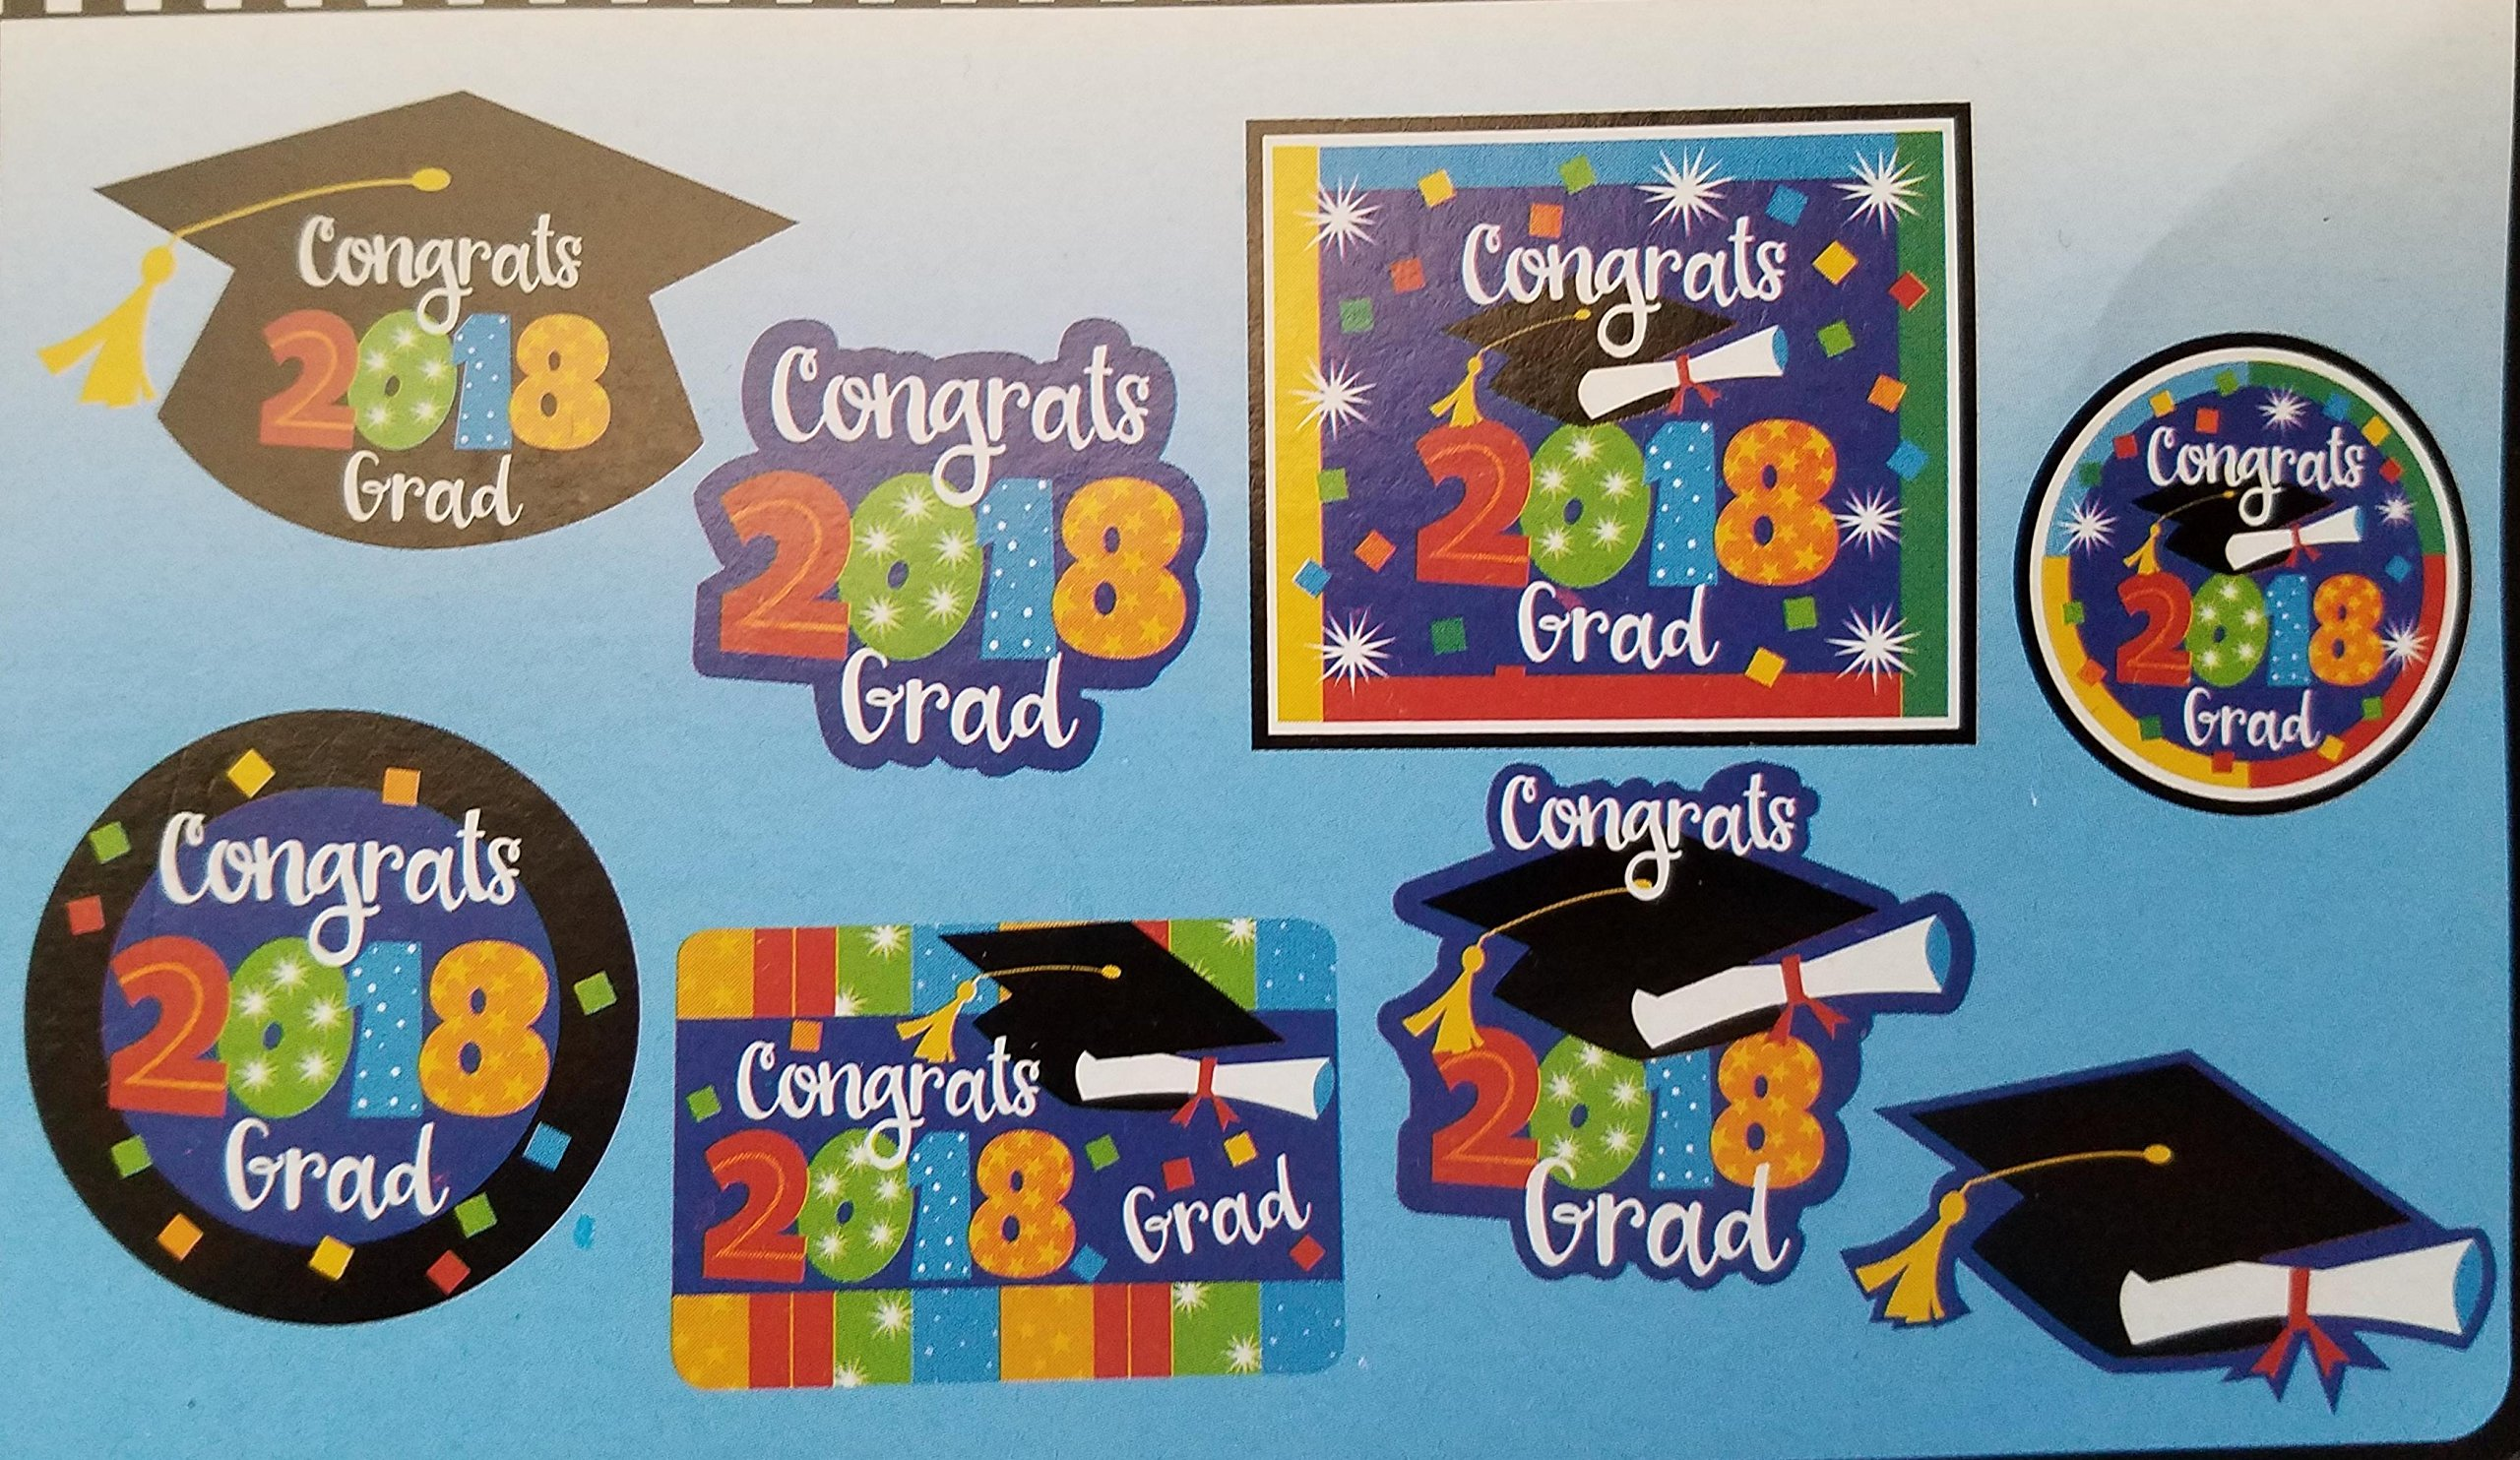 2018 Graduation Party Decorations Bundle: Accessories Include Congrats 2018 Grad Party Banner, Table Centerpiece, Cutouts, and a Beachball in a Confetti Design by TLP Party (Image #5)